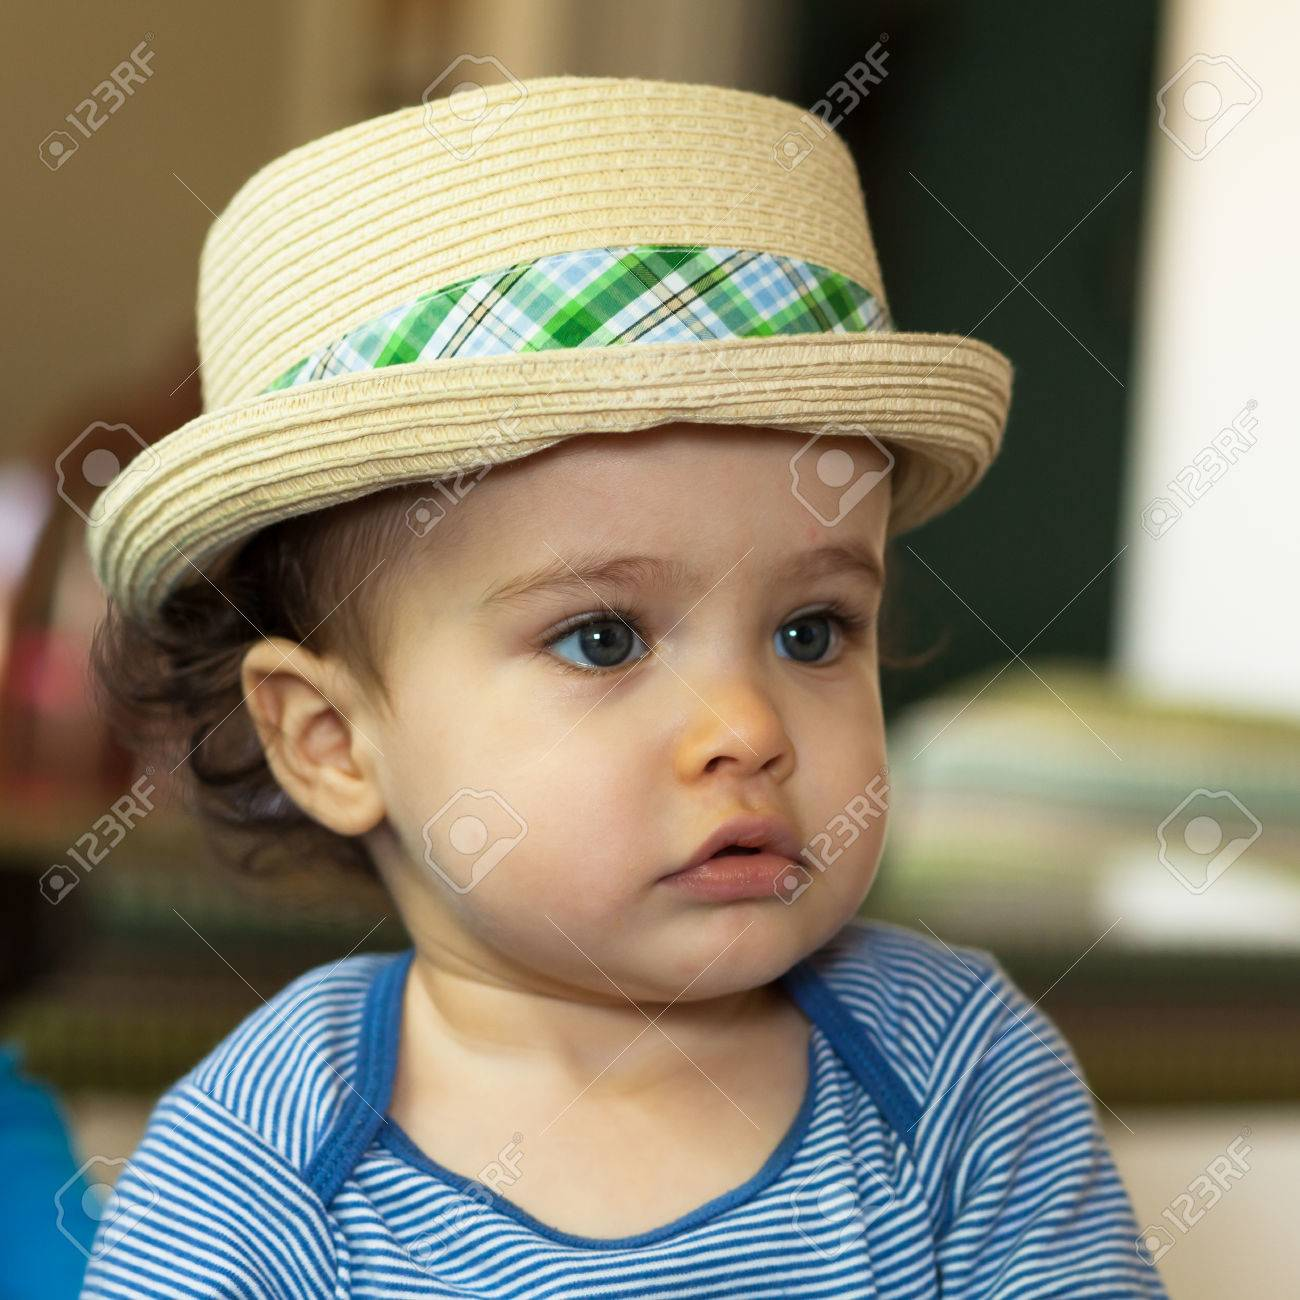 Look - Baby stylish boy with hat video